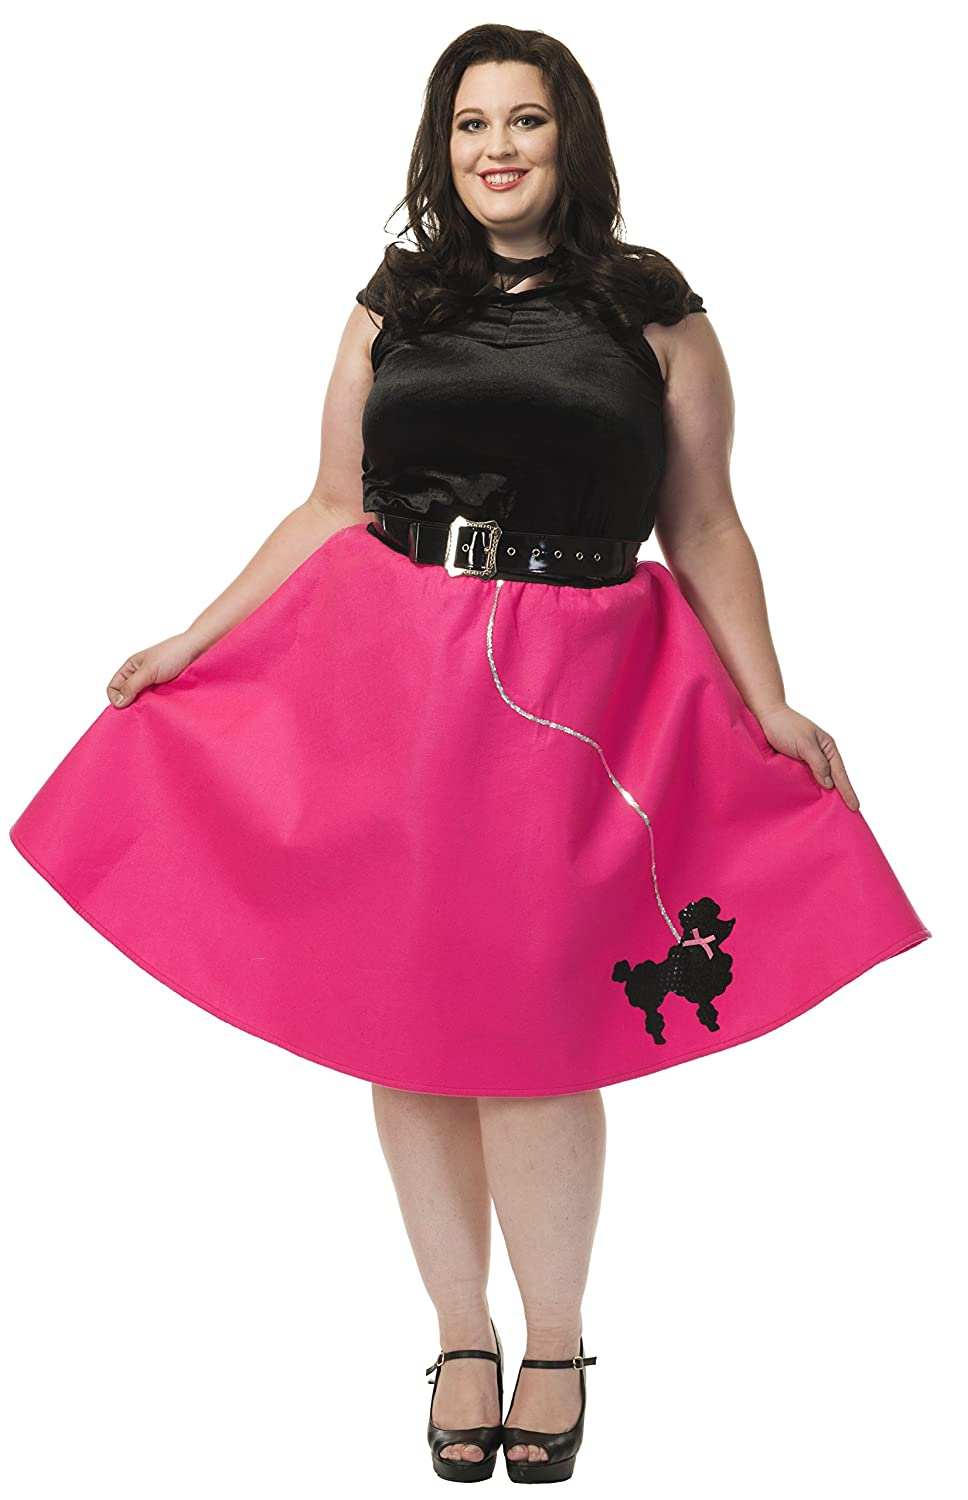 7d49d937375bc Diy Plus Size Poodle Skirt